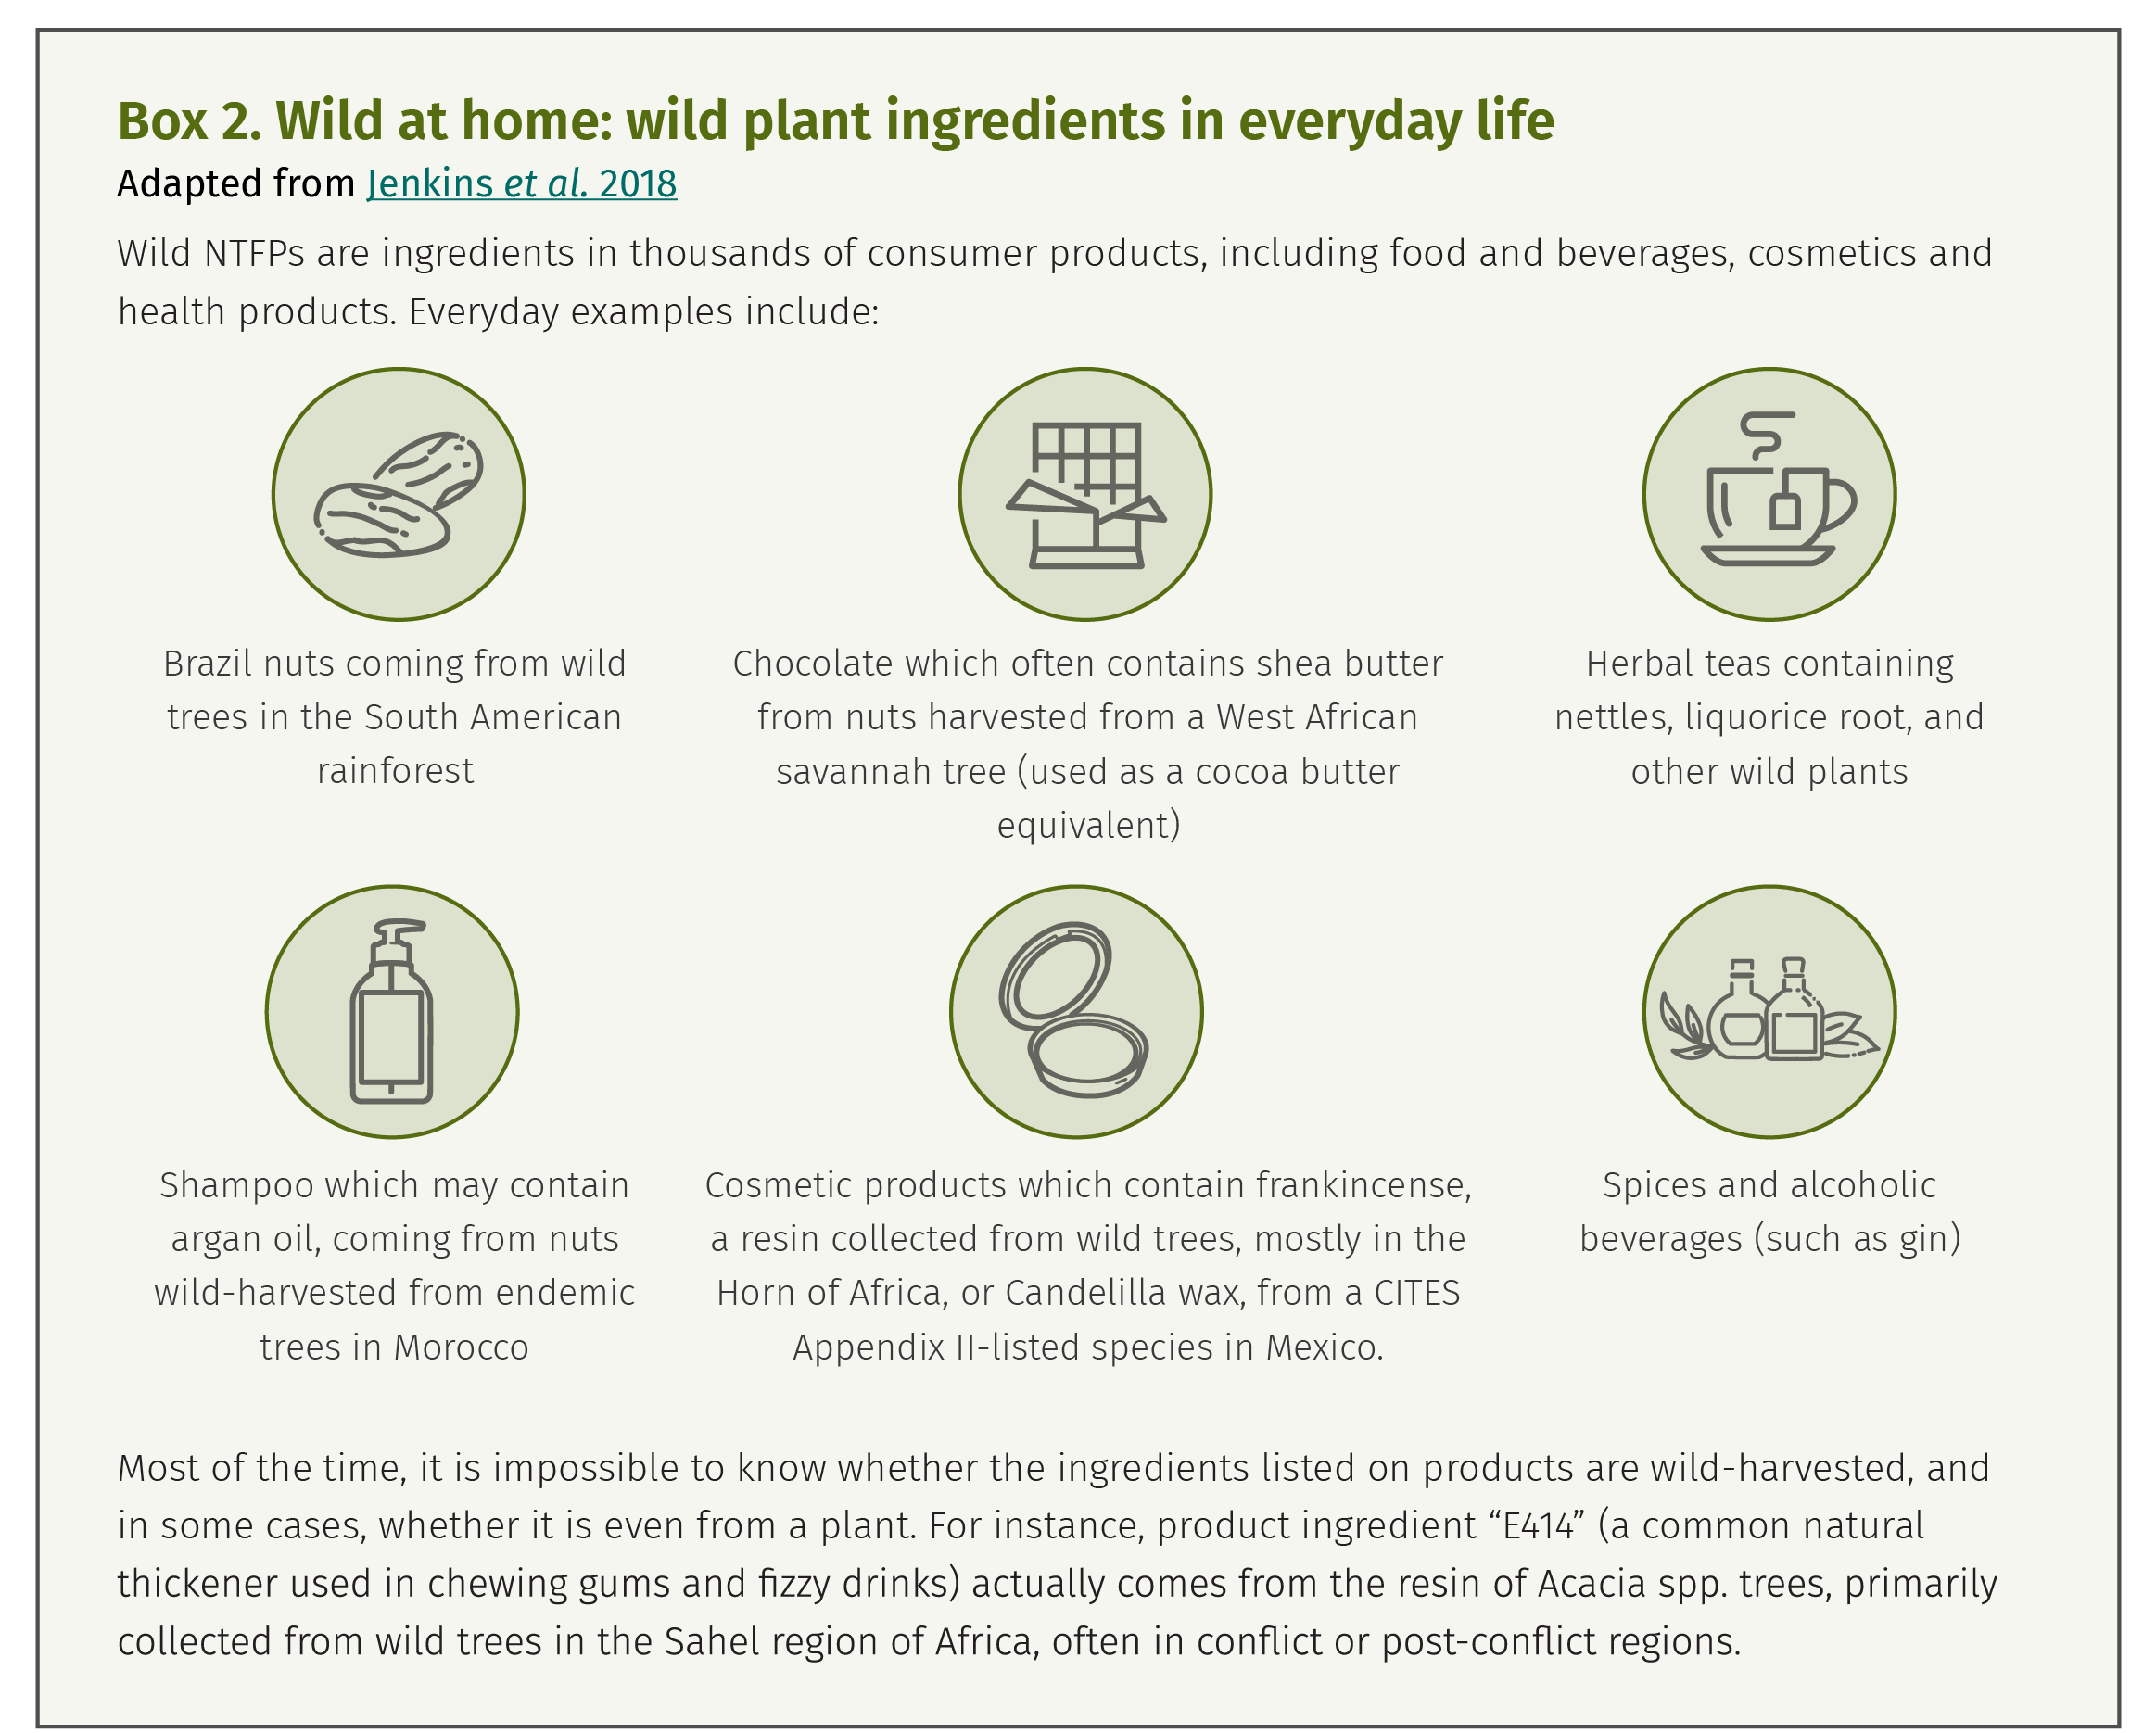 Box 2. Wild at home: wild plant ingredients in everyday life